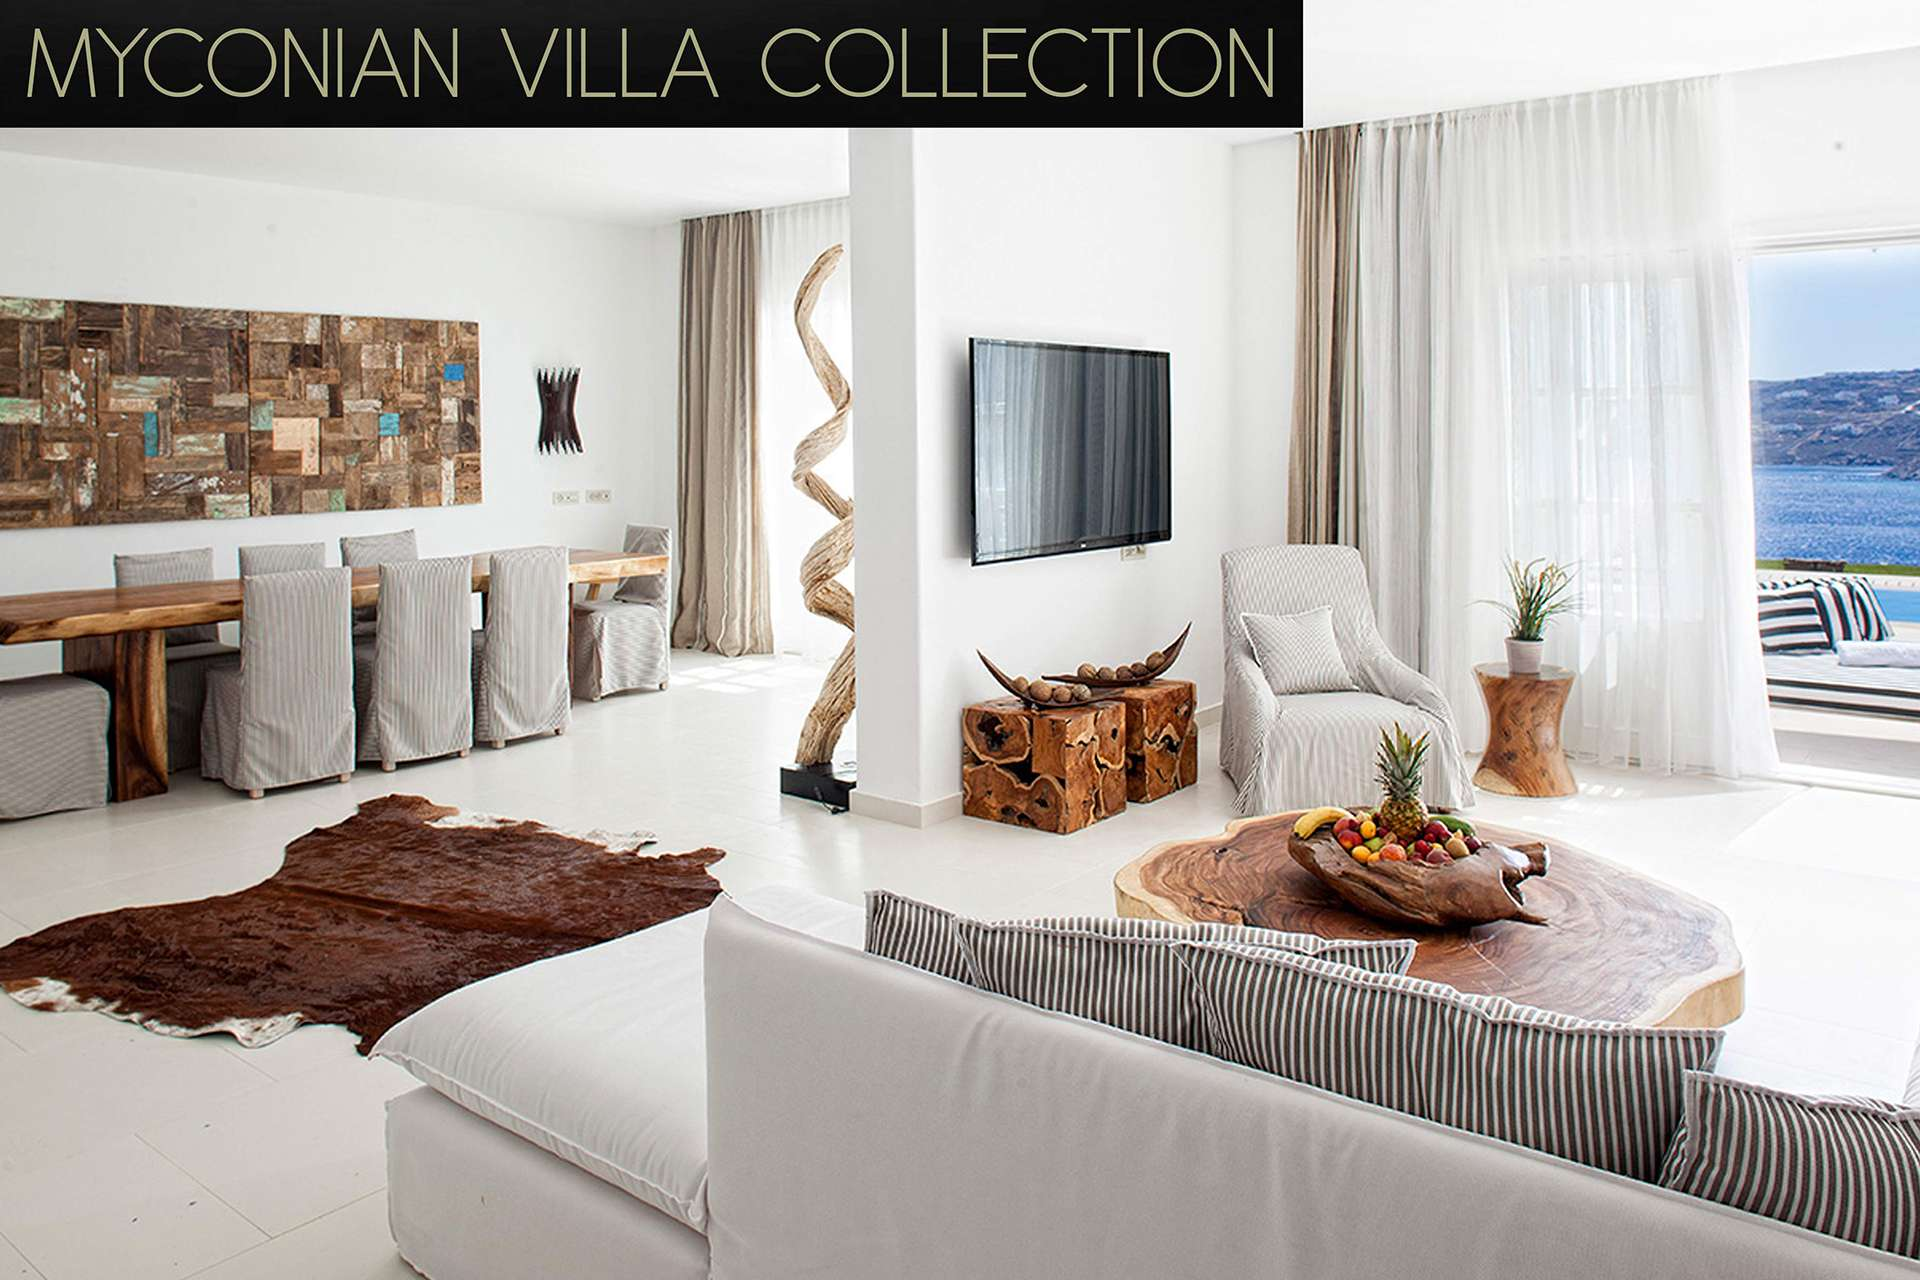 myconian-villa-collection-mykonos-hotels-and-resorts-mykonos-exclusive